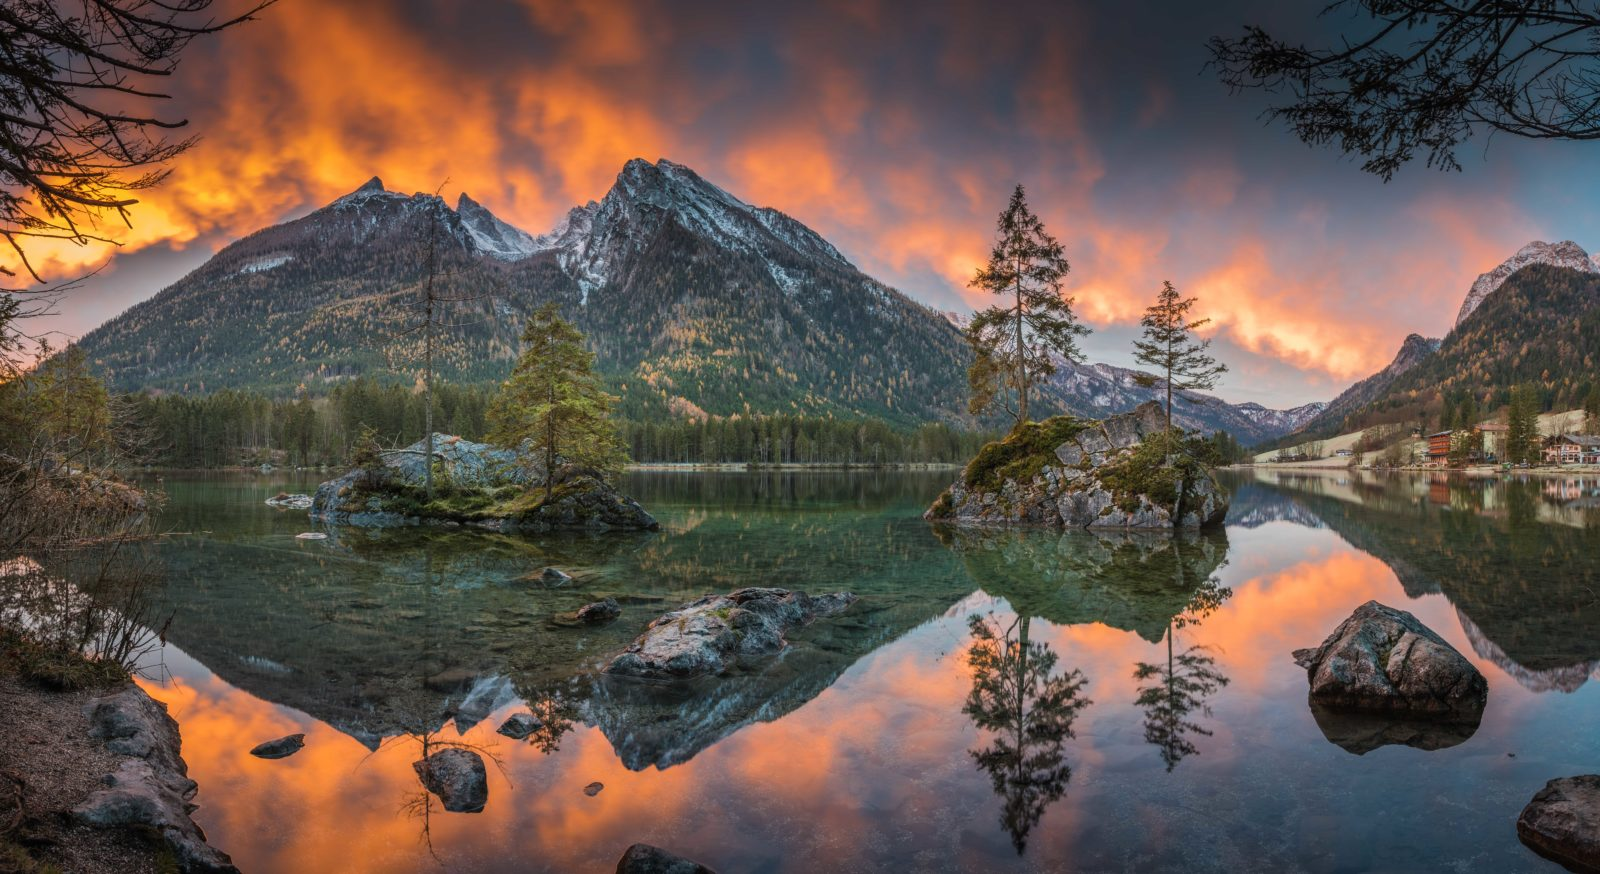 Sunrise at Hintersee.